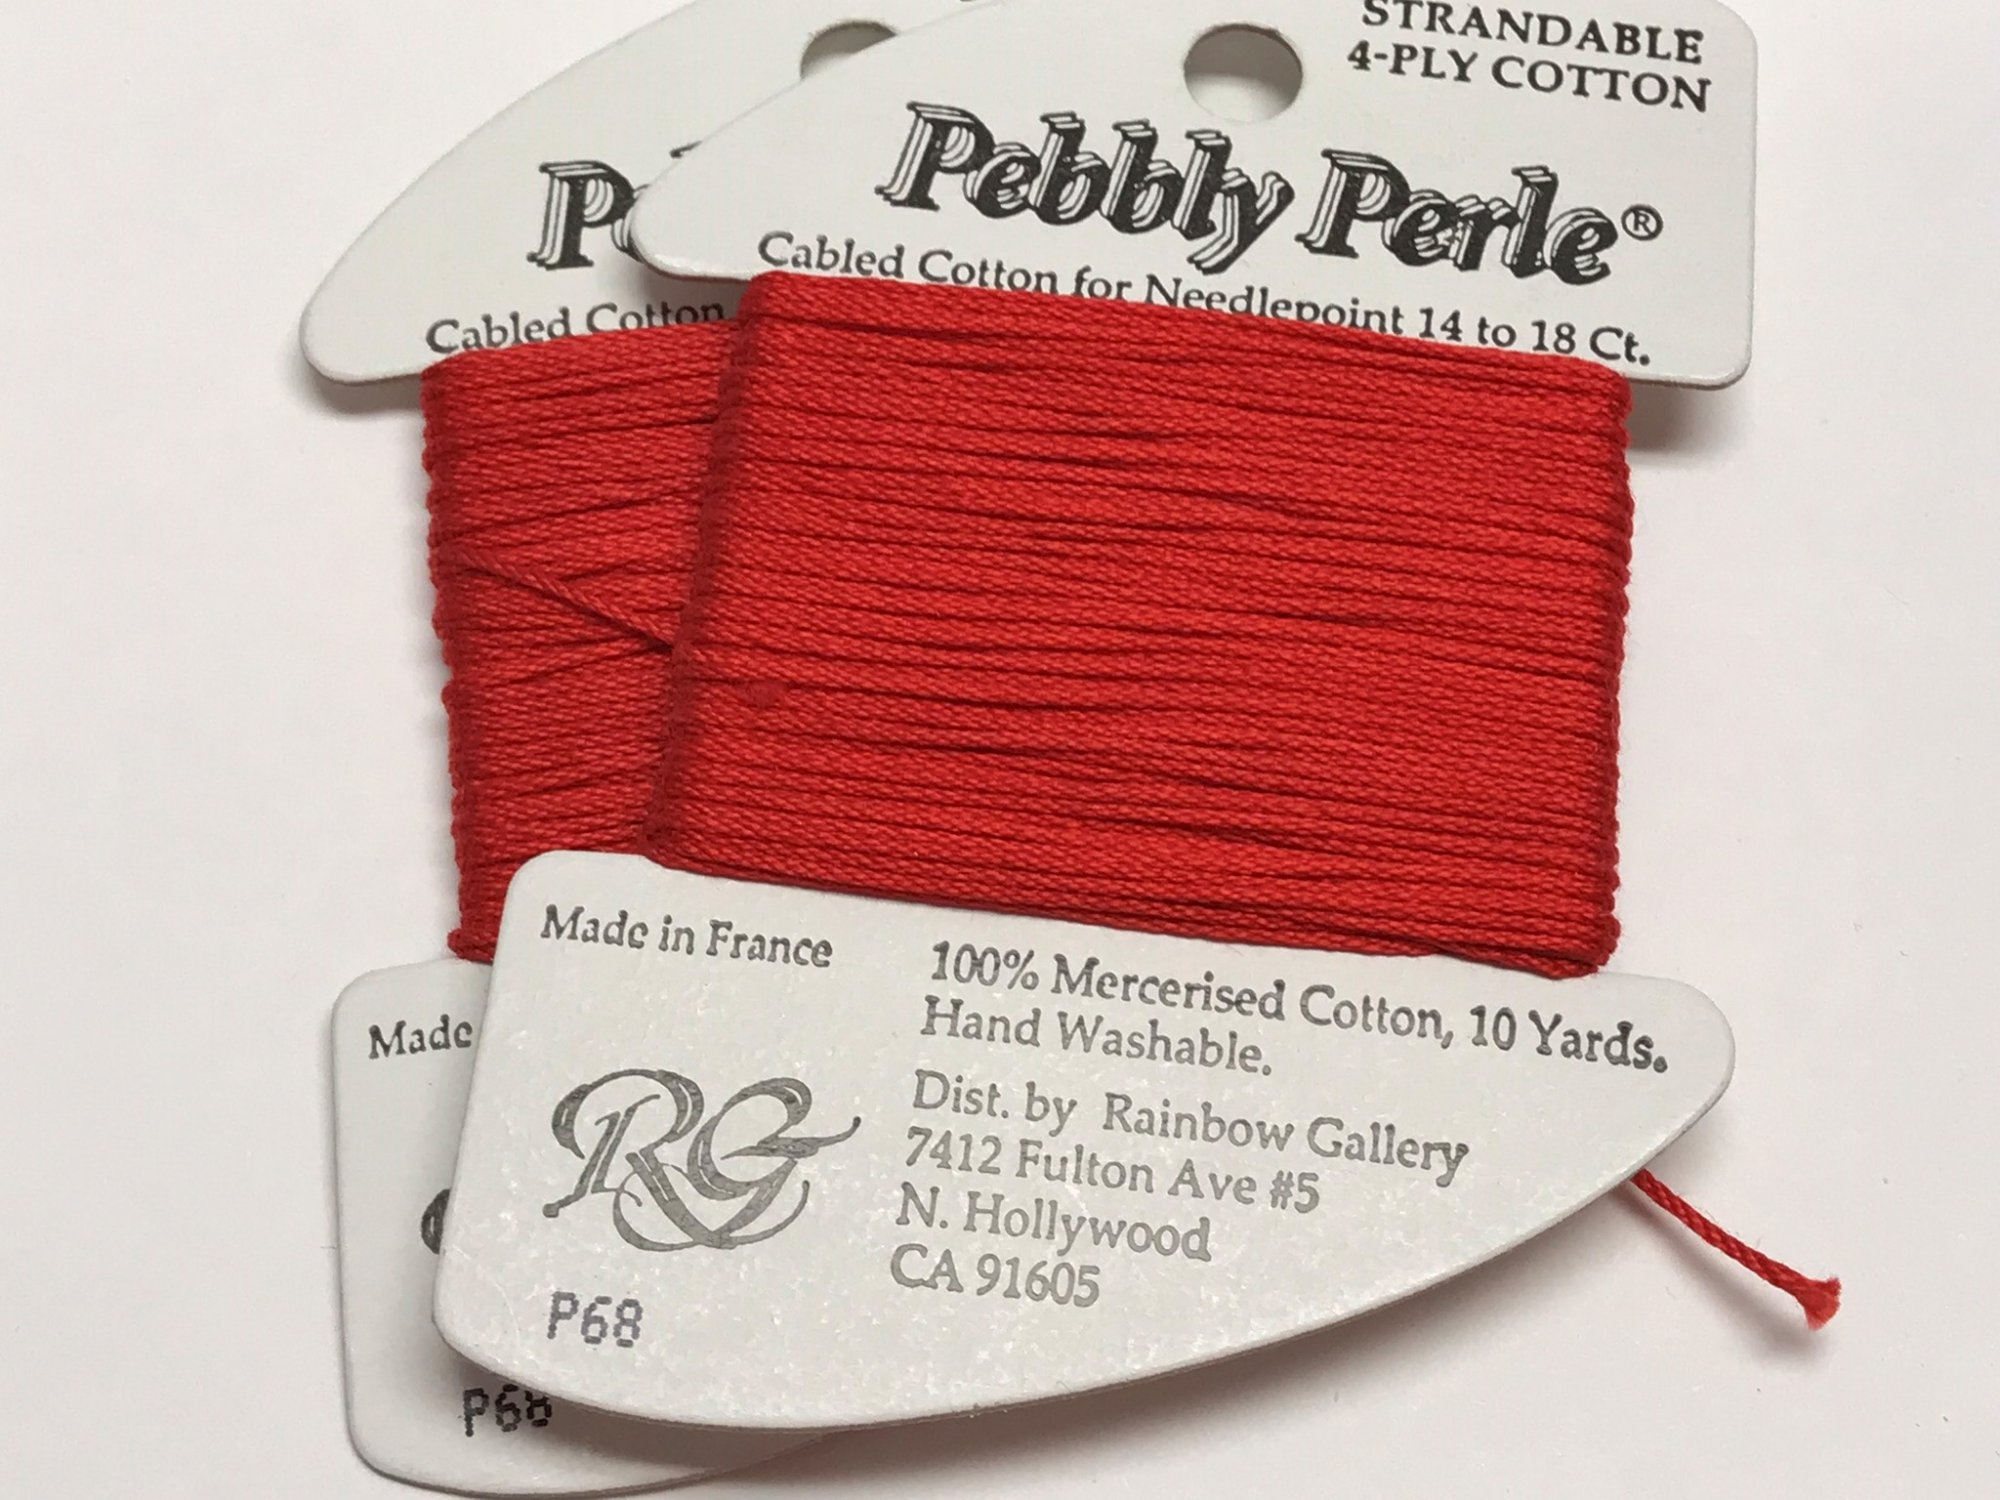 P68-RED